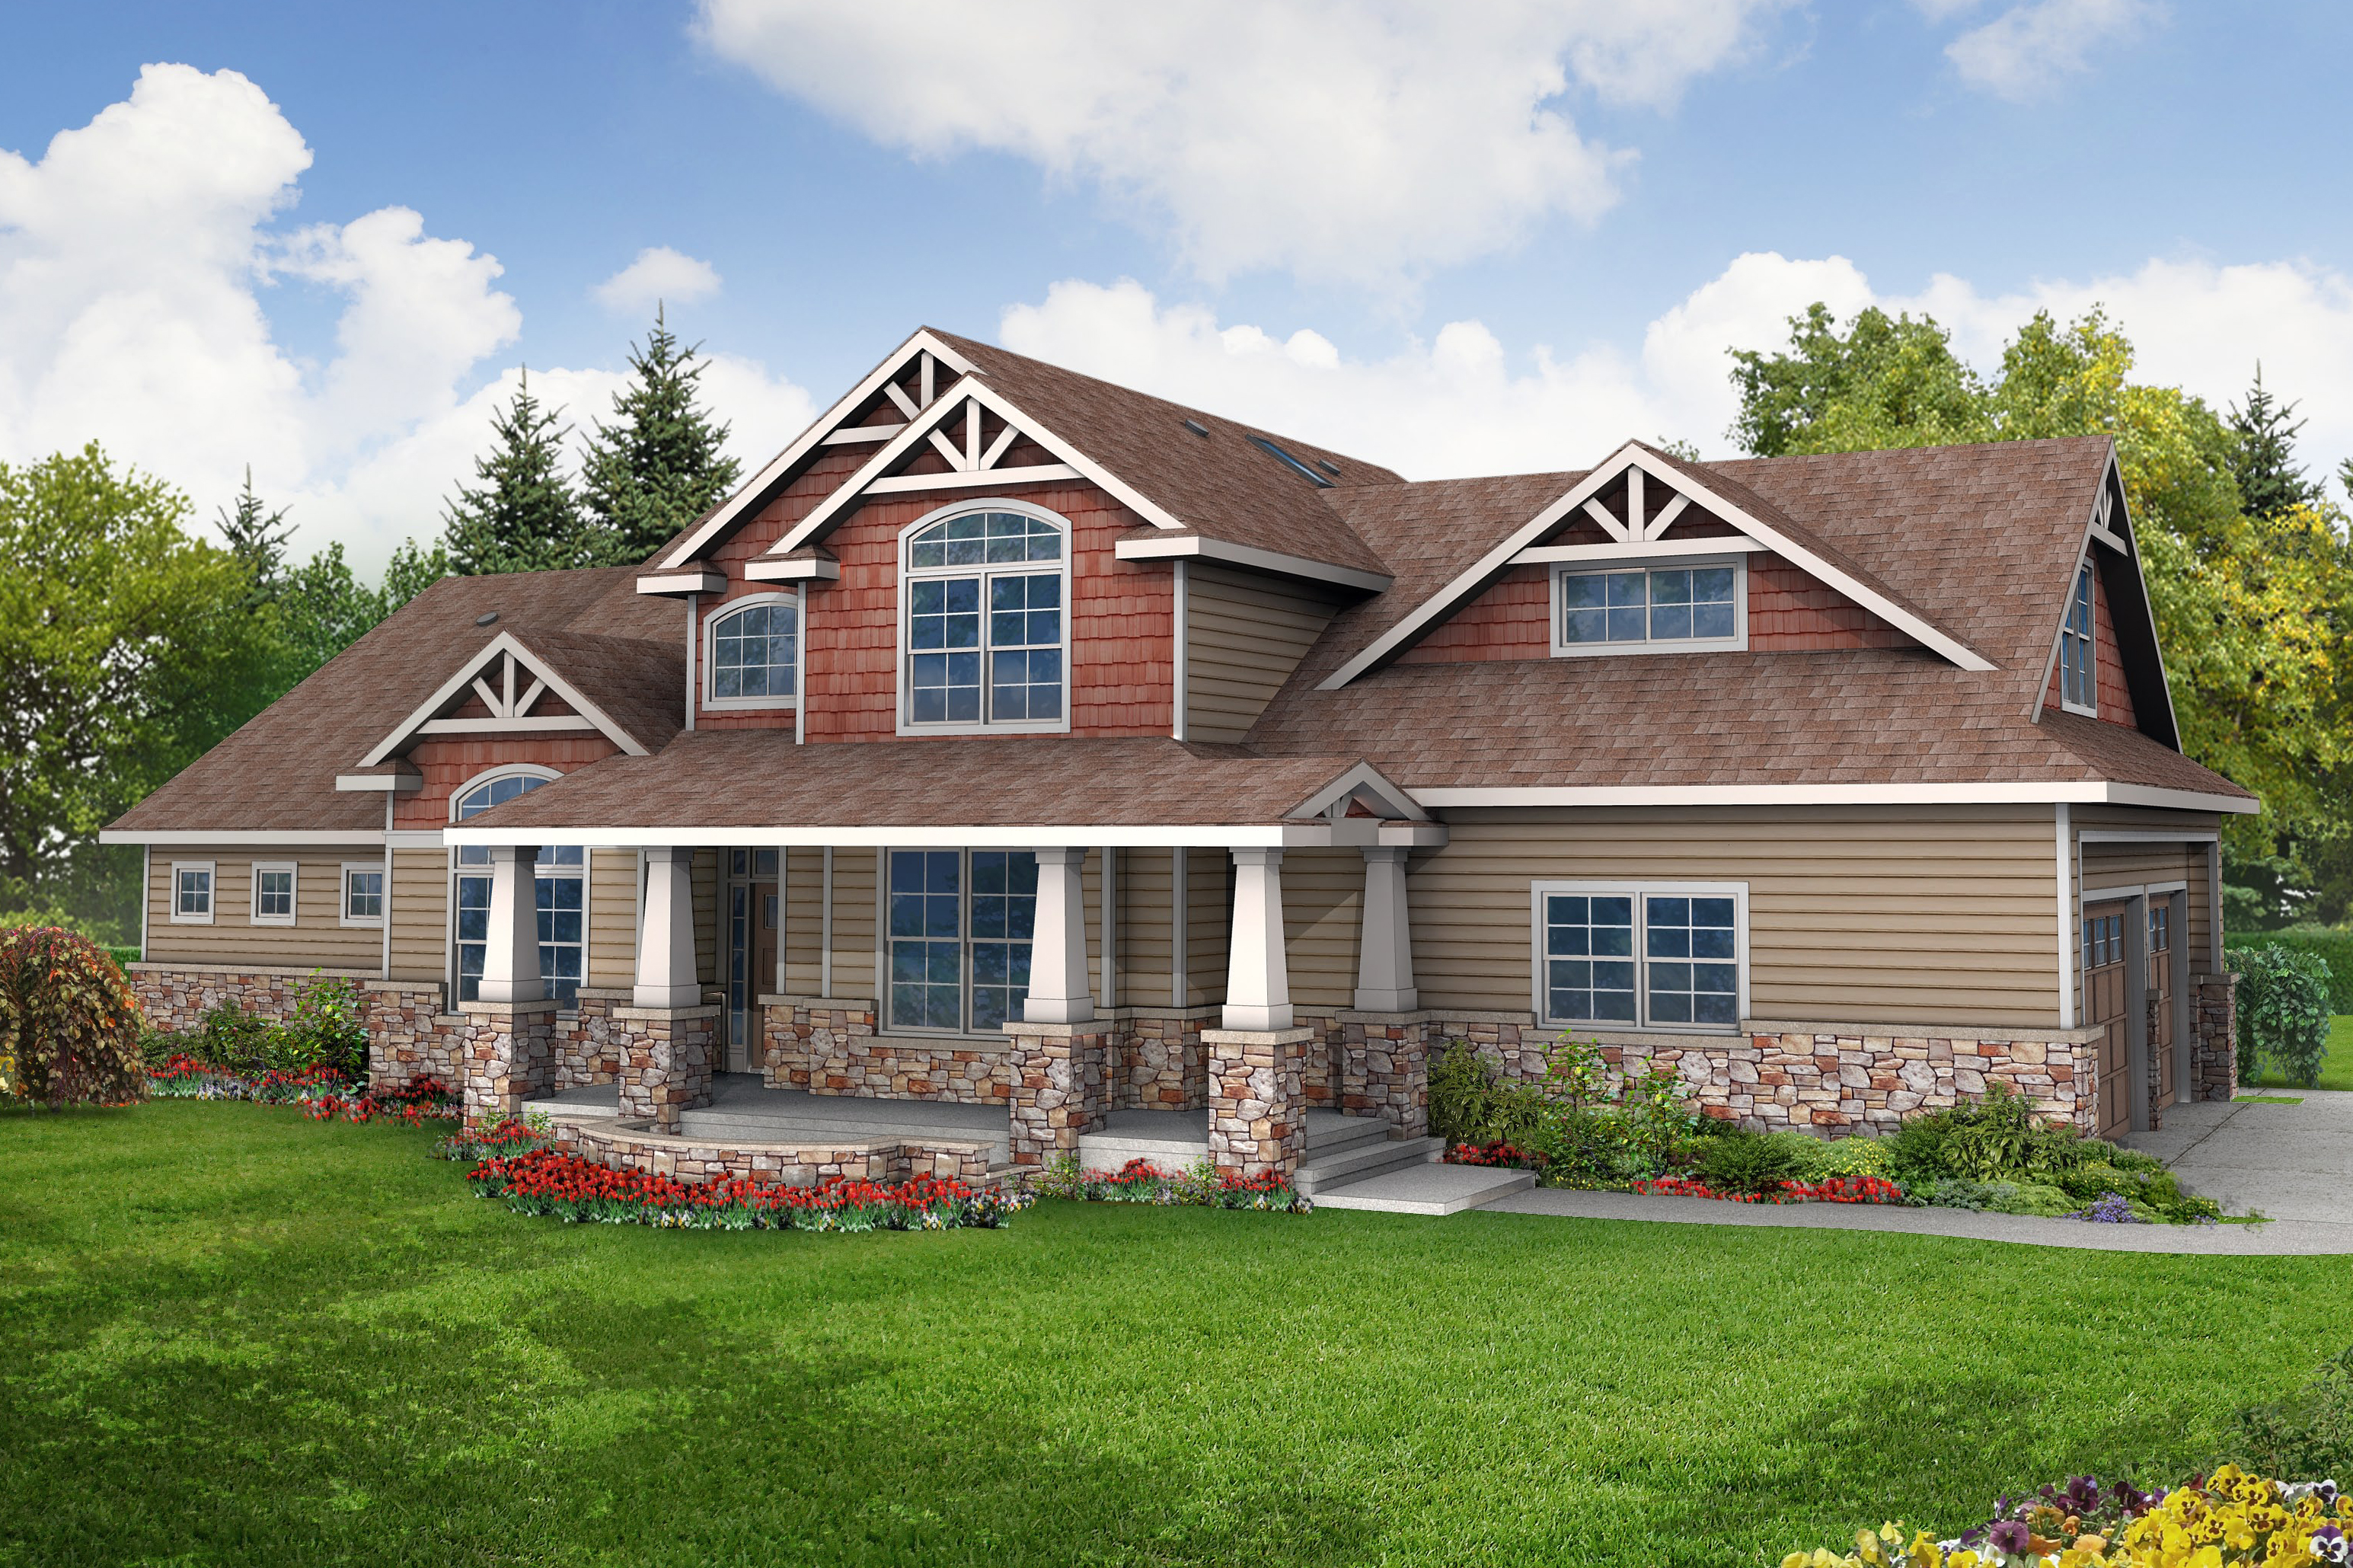 craftsman house plans craftsman home plans craftsman ForHome Palns